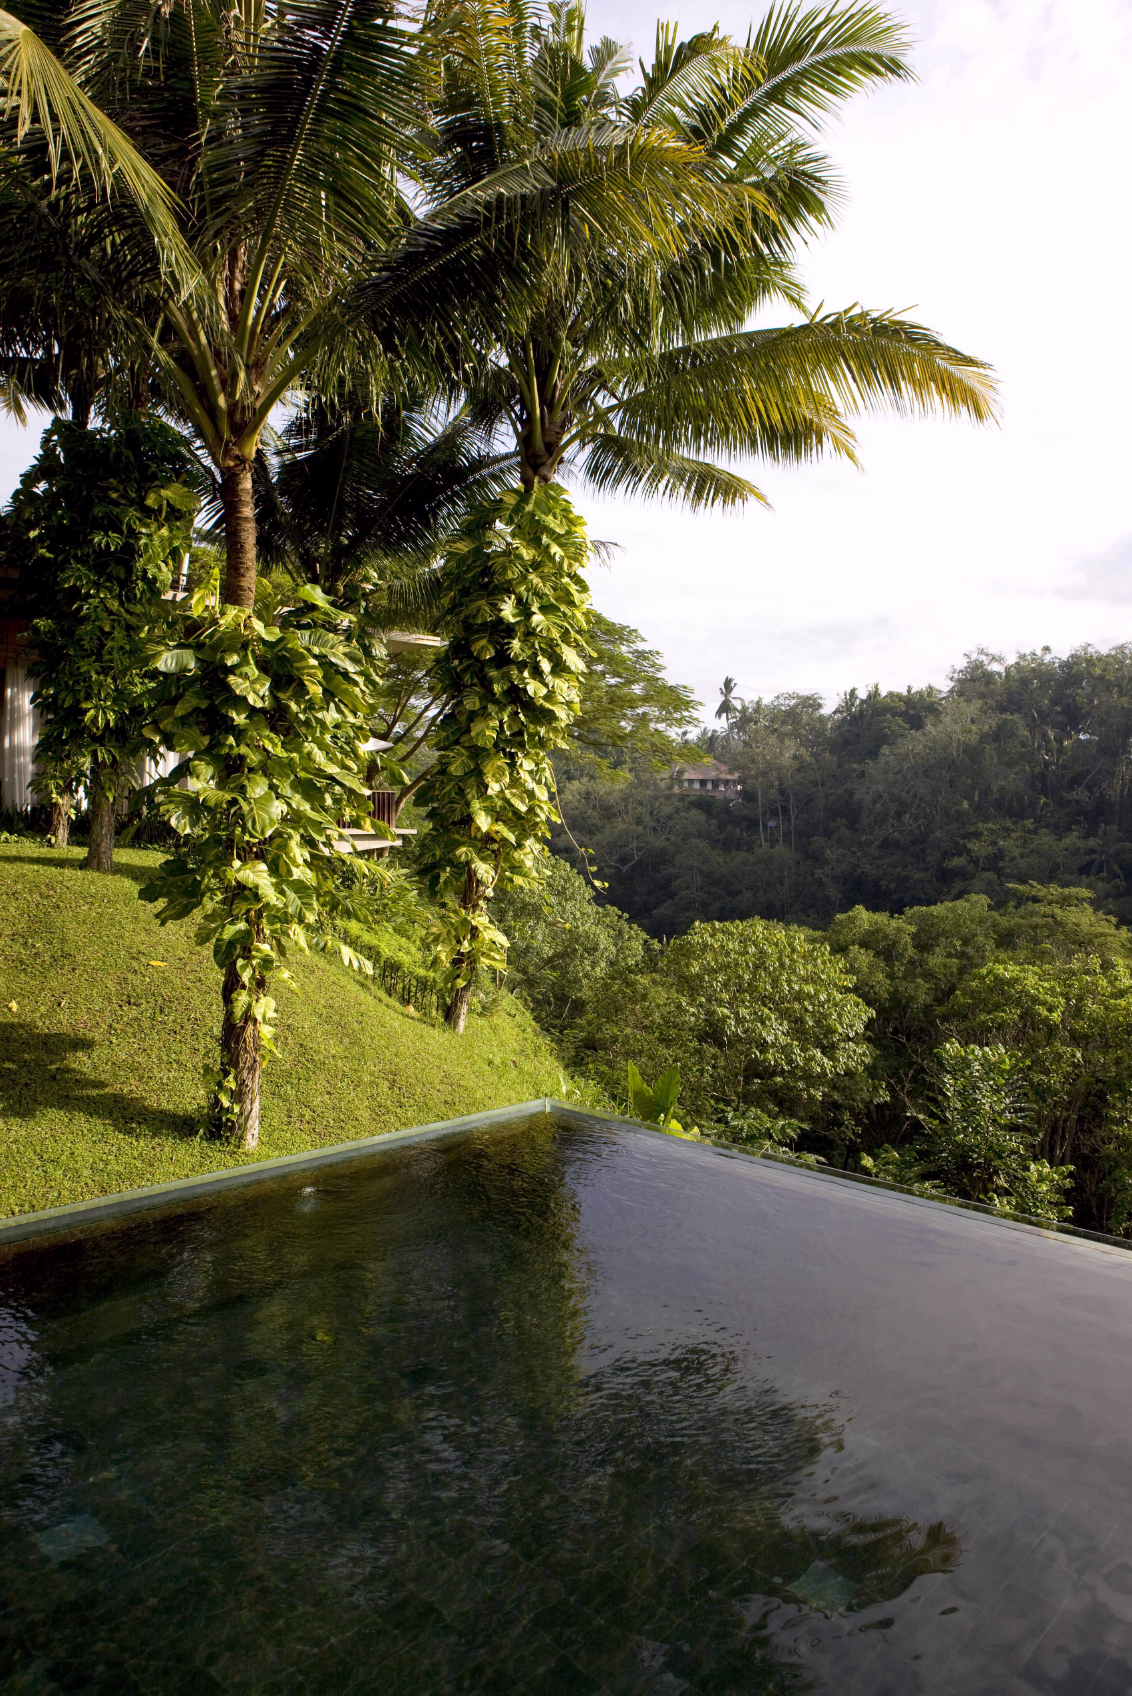 This pool is situated on the edge of a sharp drop-off into the tropical forest below. The hilly, forested landscape gives the pool a fantastic view.